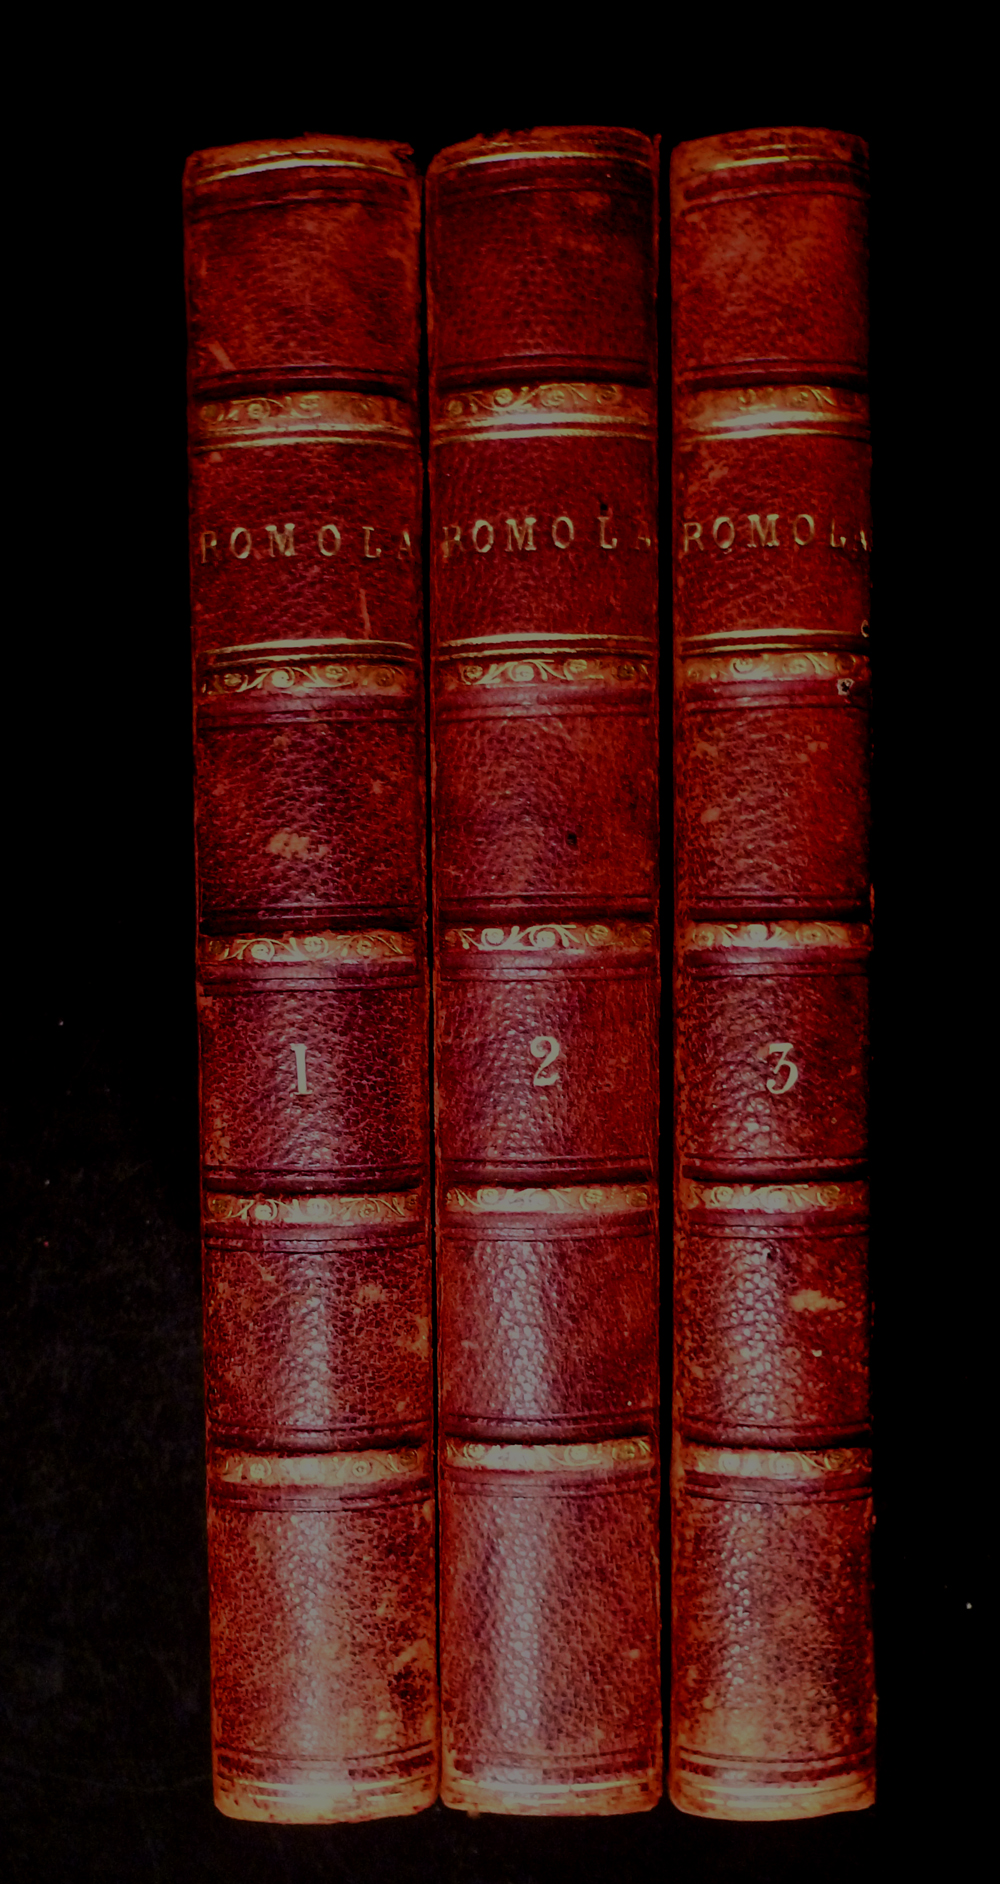 Image for George Eliot - 'Romola' - Three Volumes In Half Leather Binding - 1863